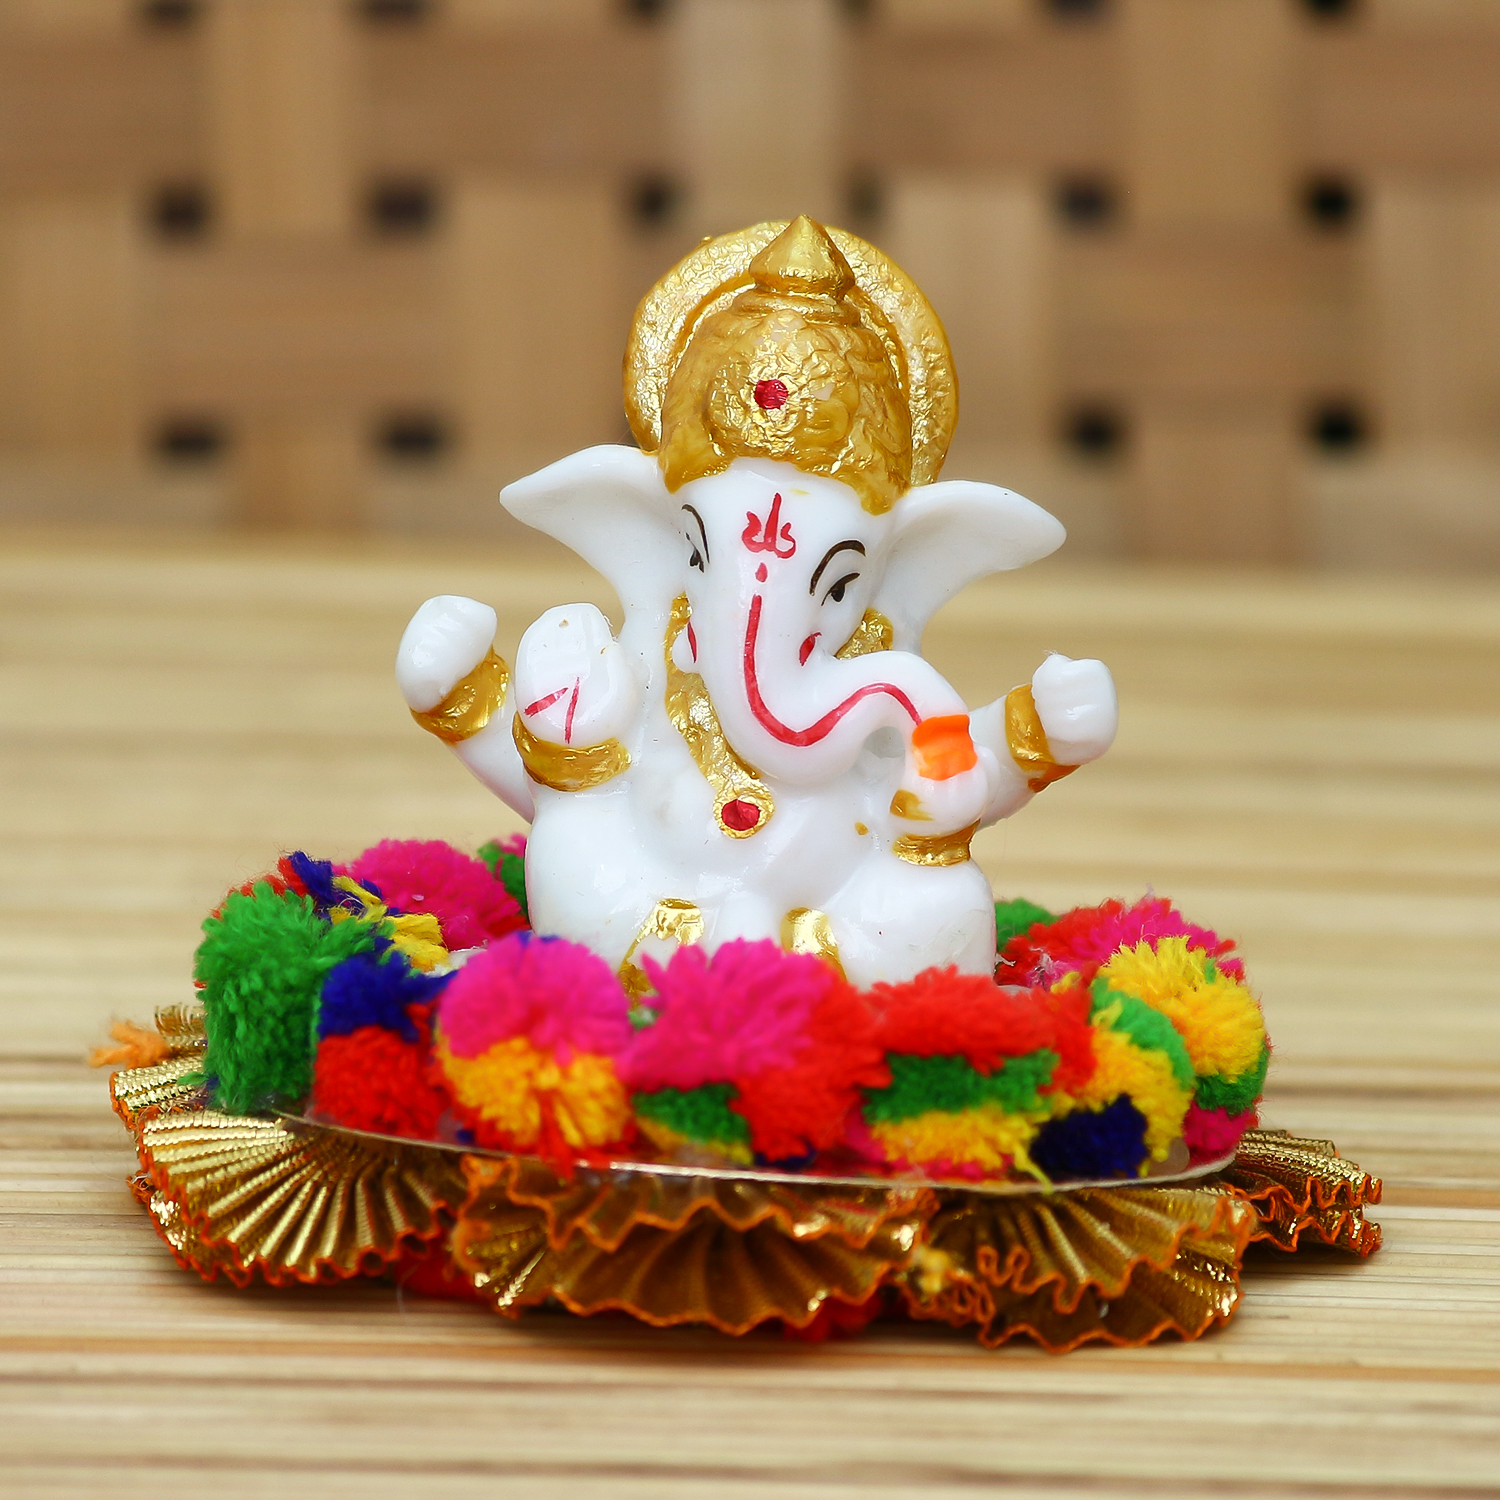 Lord Ganesha Idol on Decorative Handcrafted Plate for Home and Car Indian Home Decor